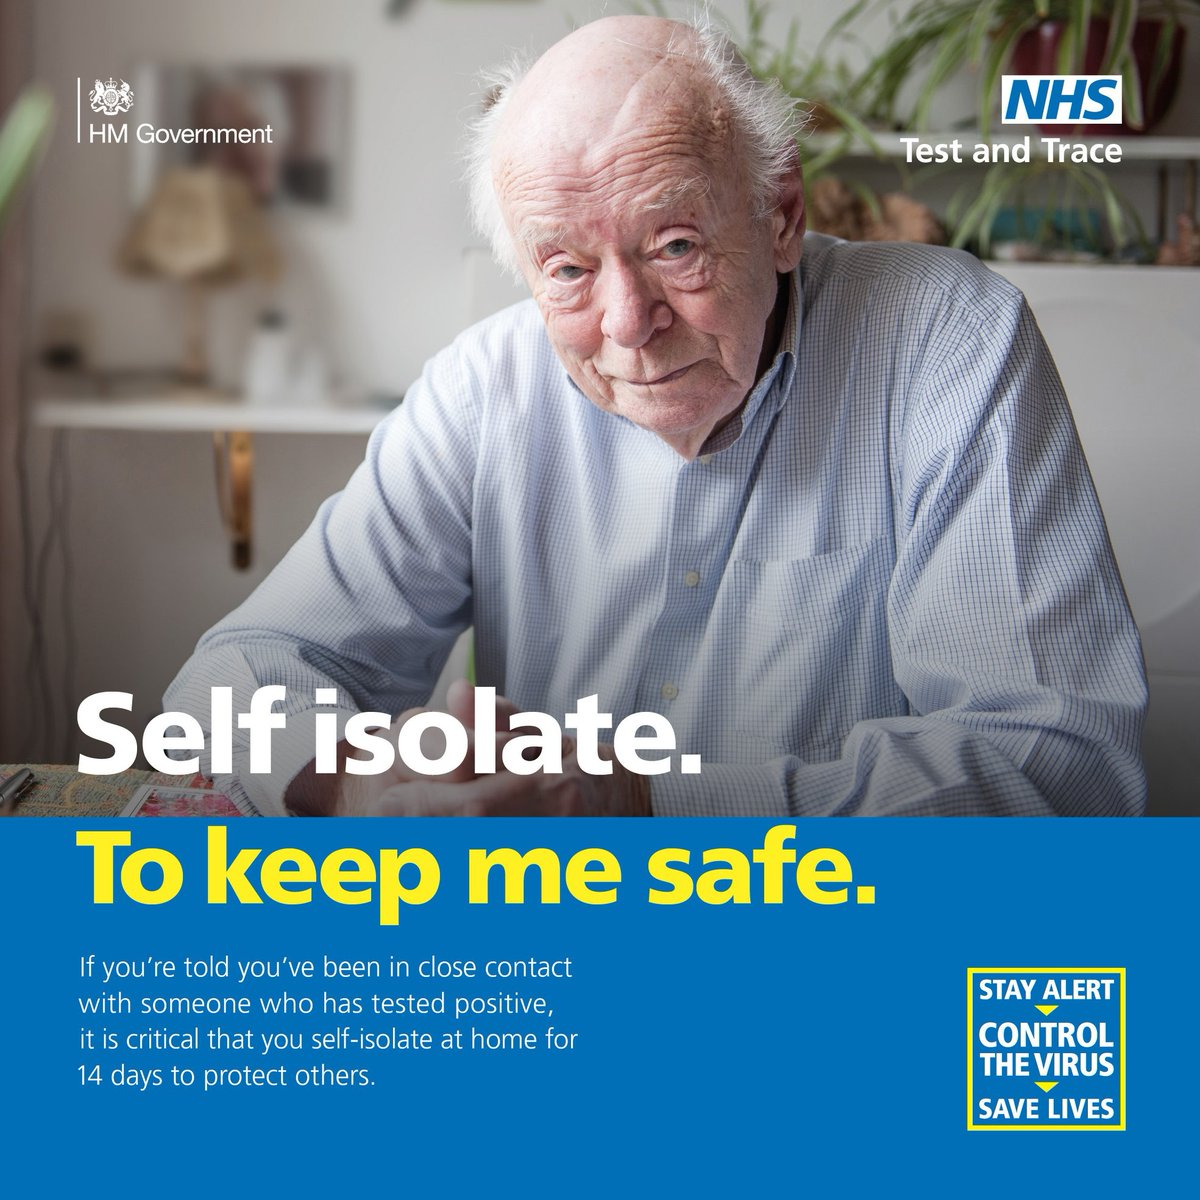 If you have COVID-19 symptoms, please self-isolate and do not come to hospital for testing - you could put more vulnerable people at risk.  You can book a test at a designated testing centre instead by calling 119 or registering online.  #StopTheSpread  https://t.co/m86y1BYmJH https://t.co/uoCYcuFwfX